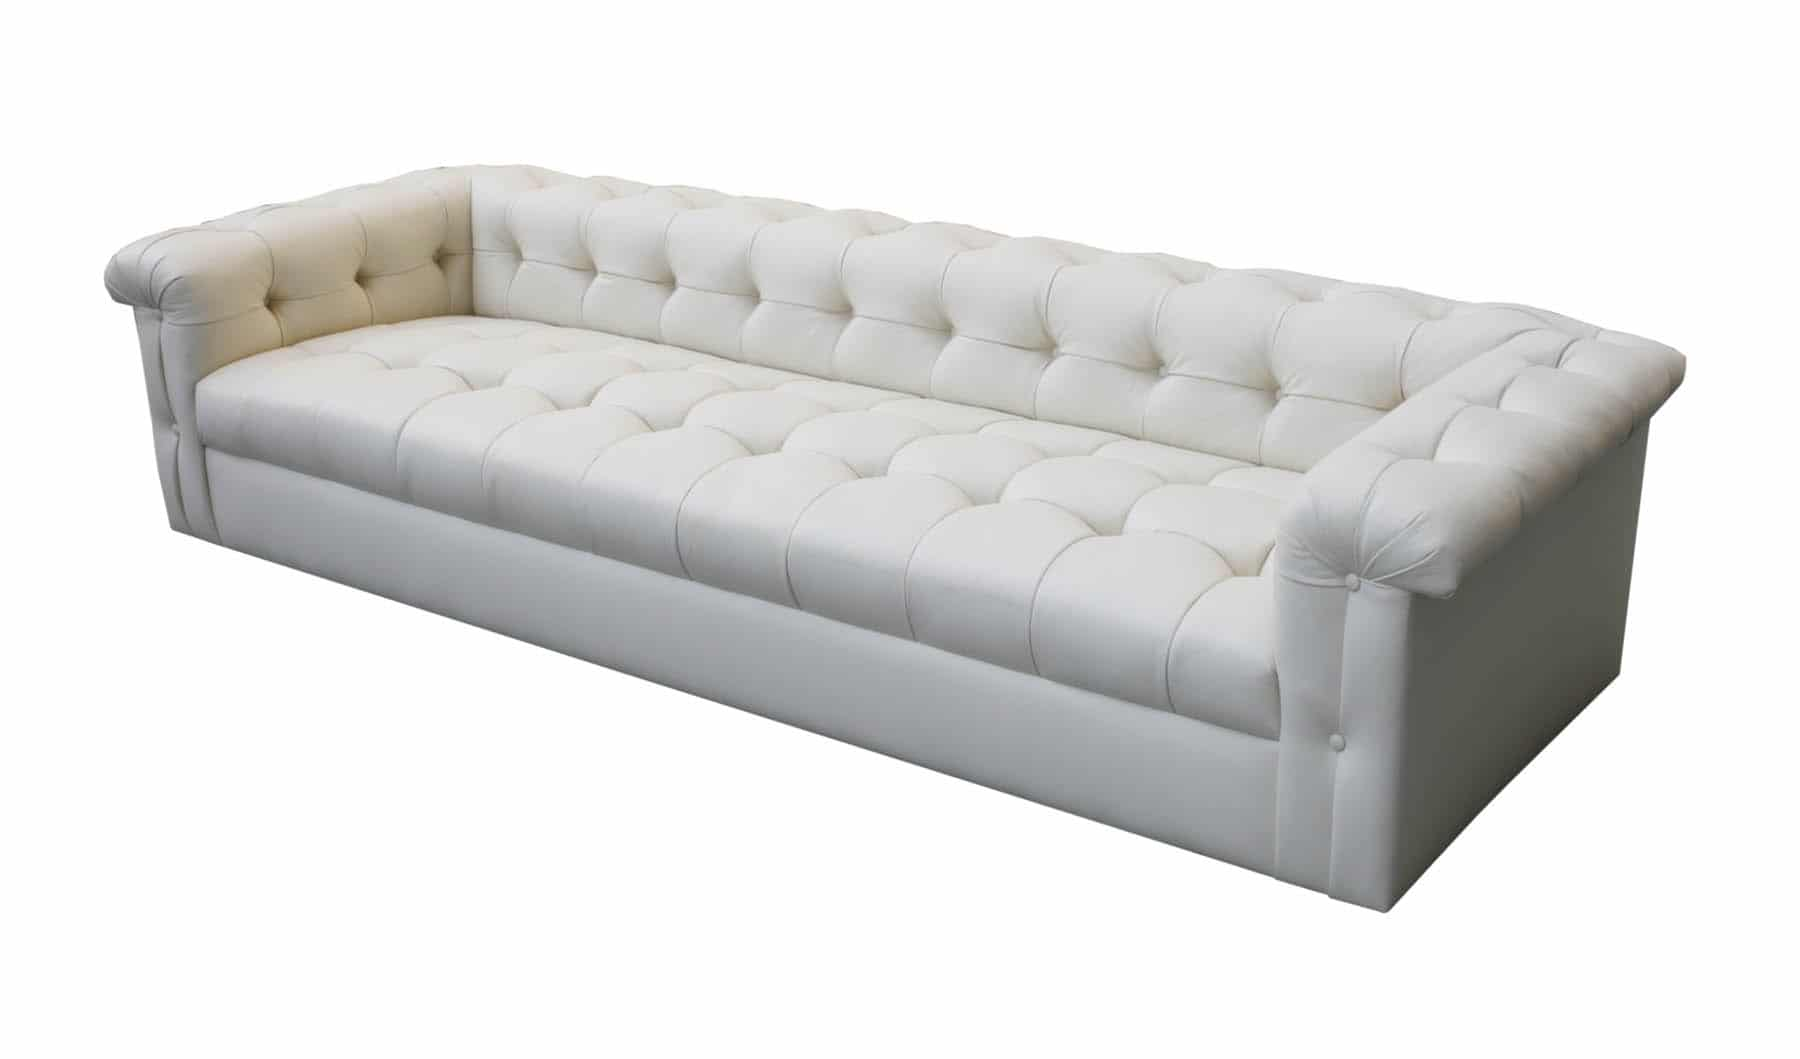 leather sectional sofa tufted shelter arm edward wormley for dunbar eight foot